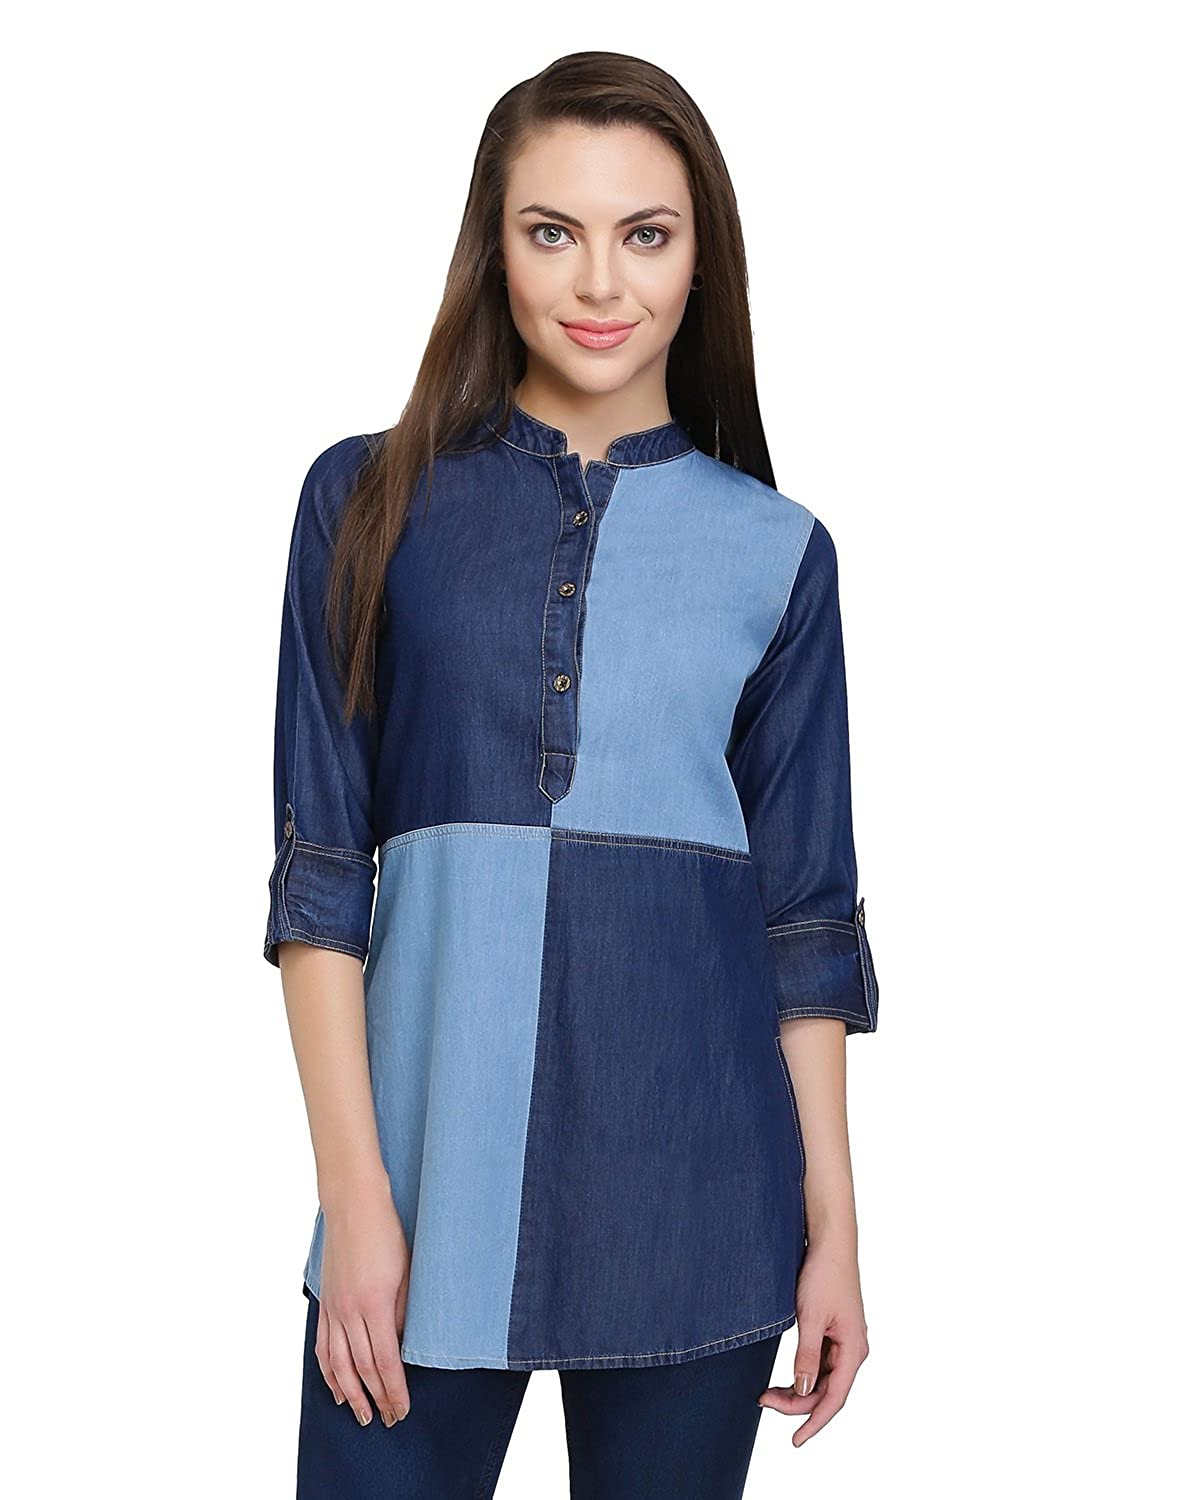 d0629c02ed Denim Short Kurti for Women - Casual Office wear - Short Kurtis for Ladies  - Denim Top for Jeans - Designer Kurtis  Amazon.in  Clothing   Accessories